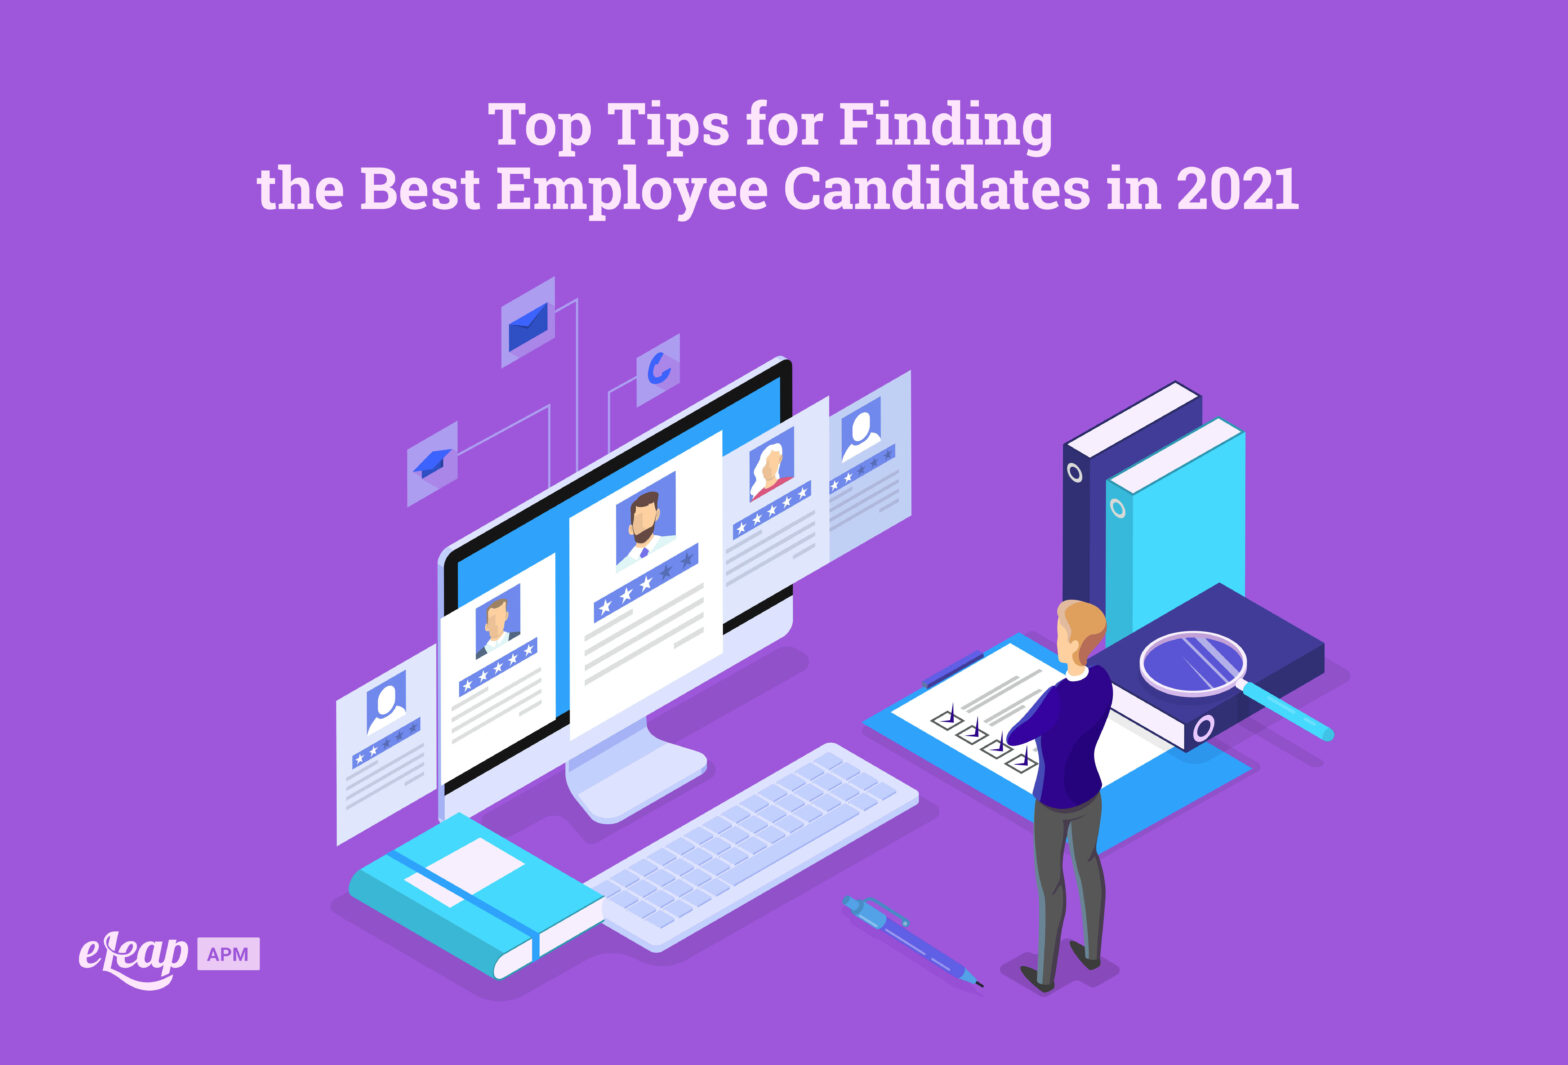 Top Tips for Finding the Best Employee Candidates in 2021